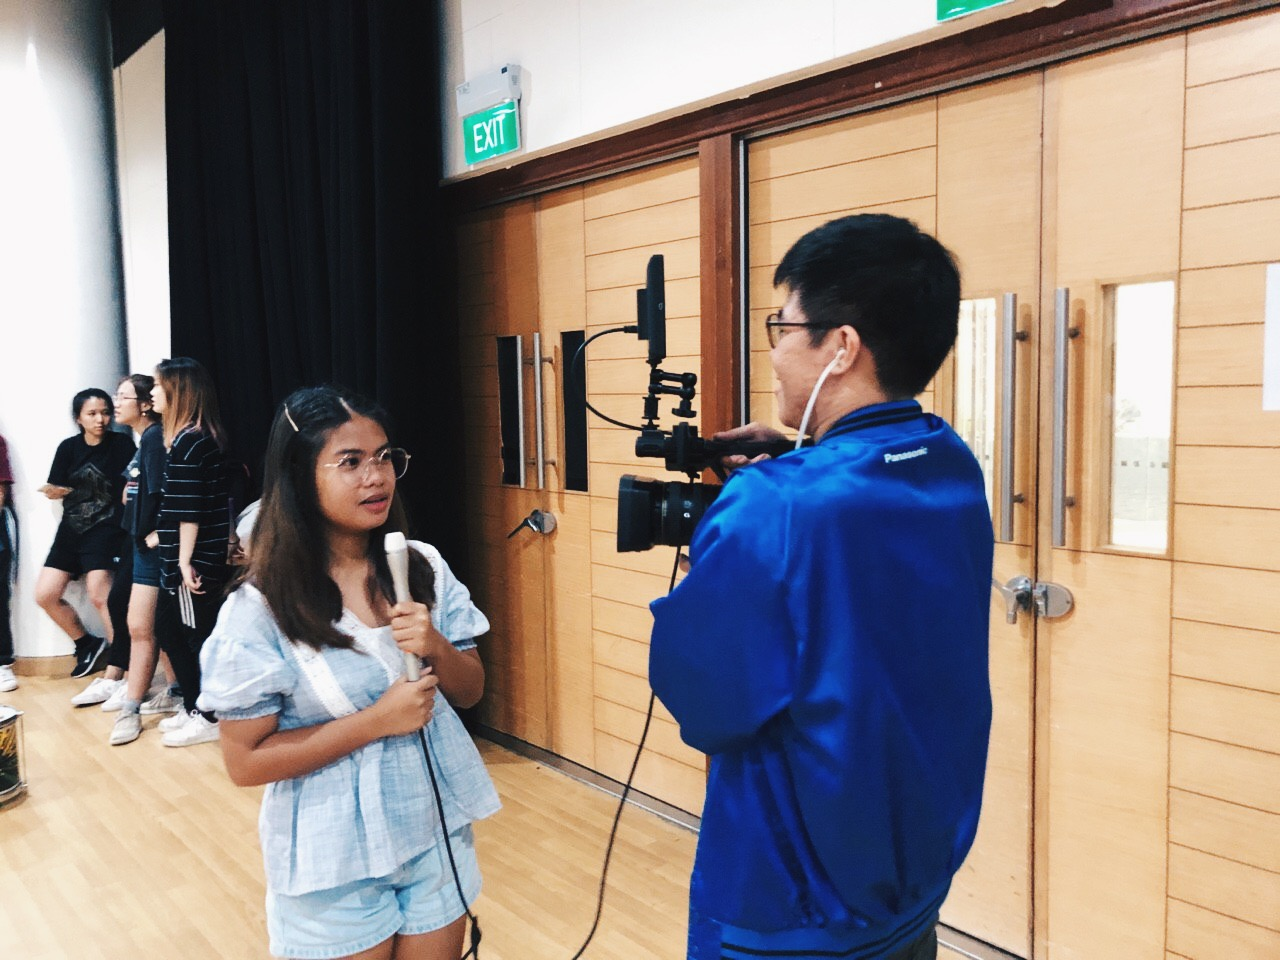 CAMPUS TV (CTV)  is an in-house student production unit that develops and produces original video content, with the aim of entertaining and informing our school community.